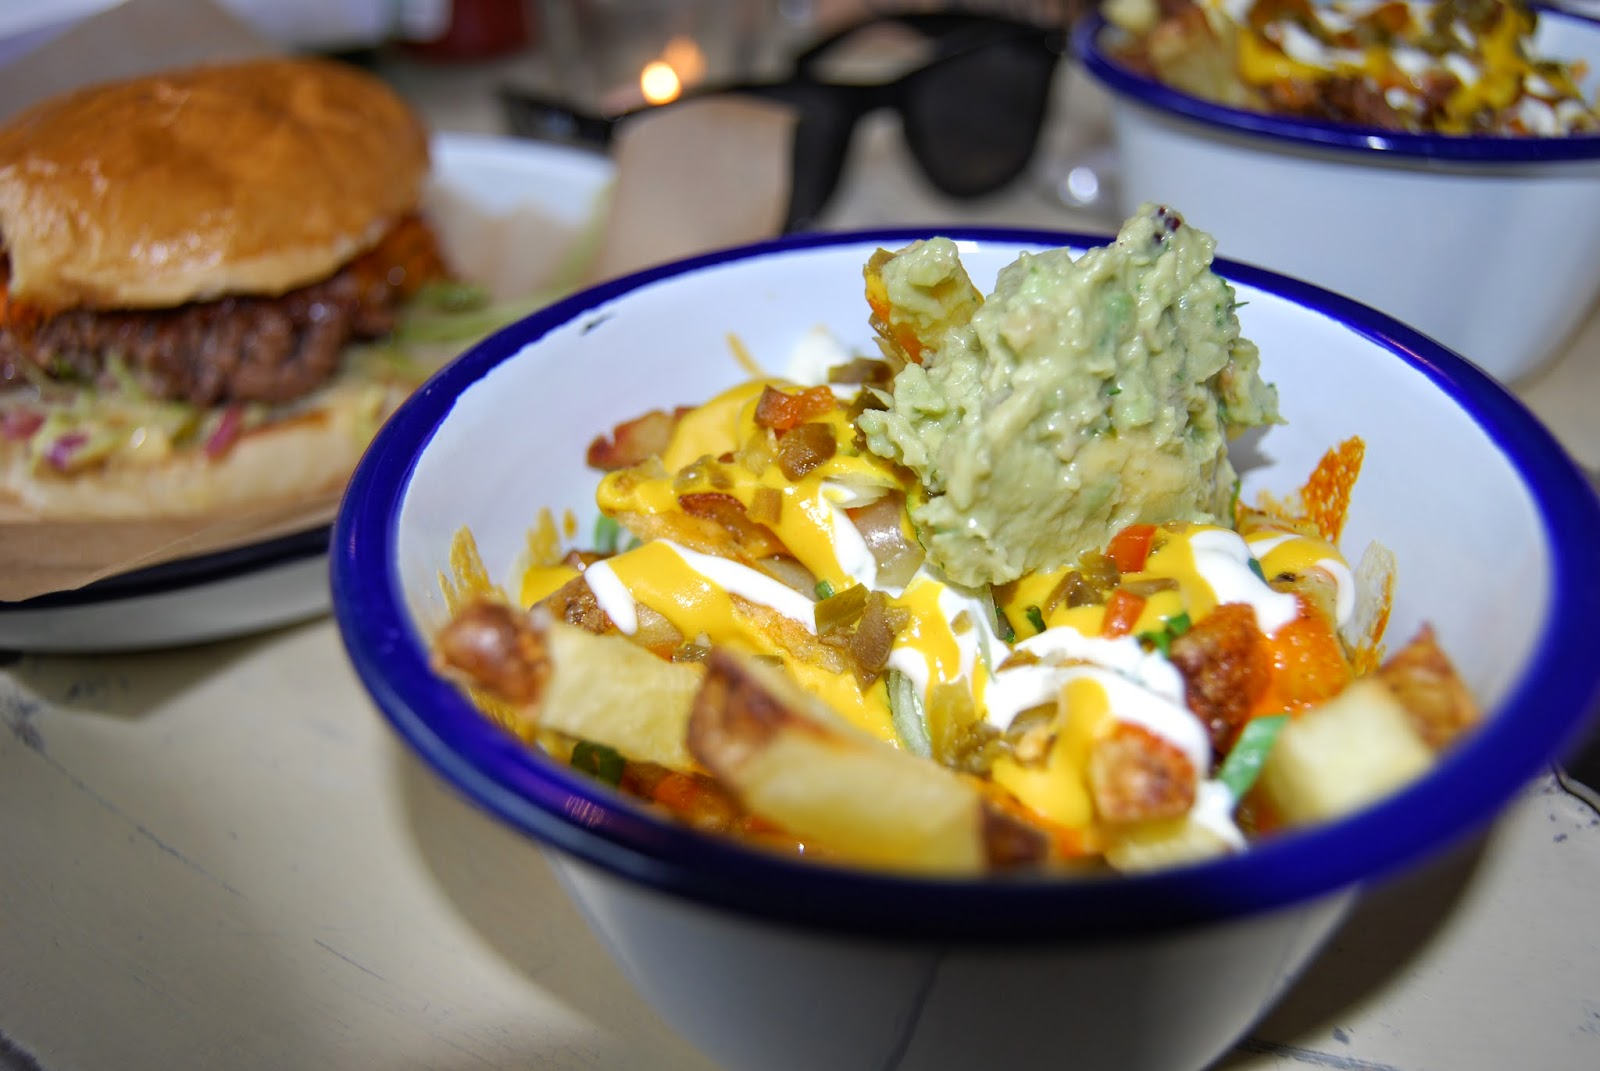 fries, chips, guacamole, avocado, sour cream, jalapeno, cheese